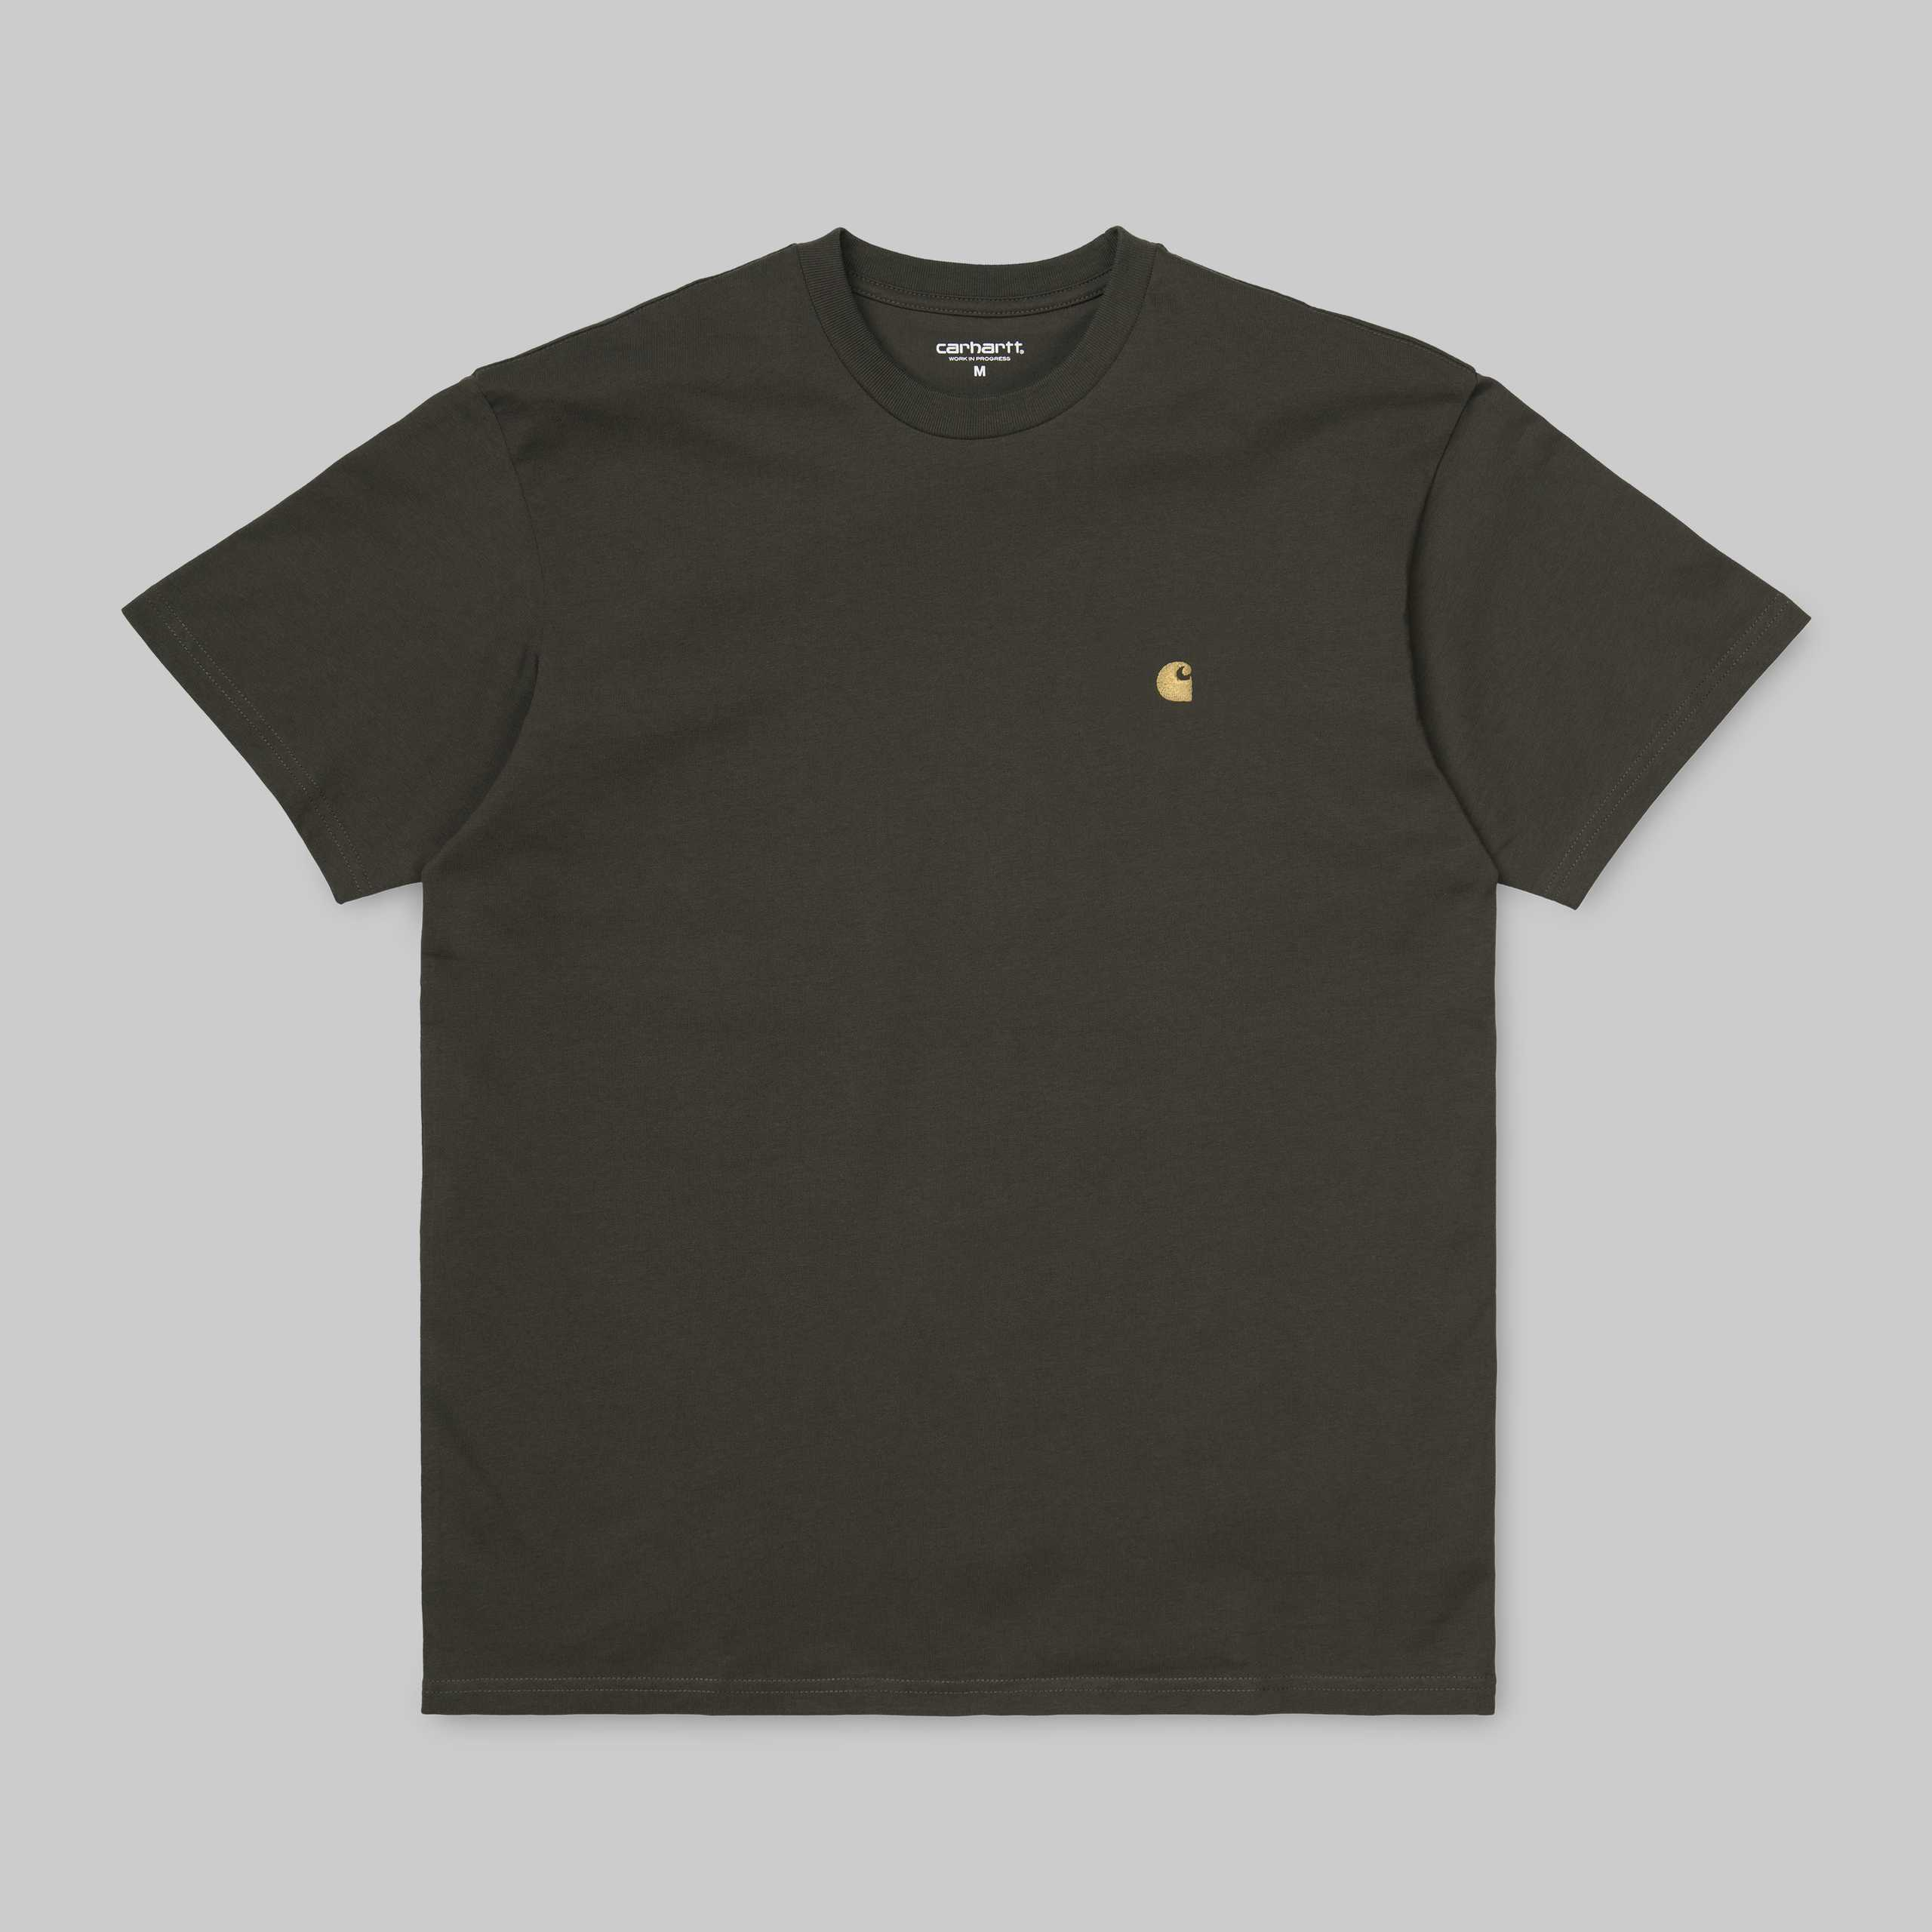 s-s-chase-t-shirt-cypress-gold-1425